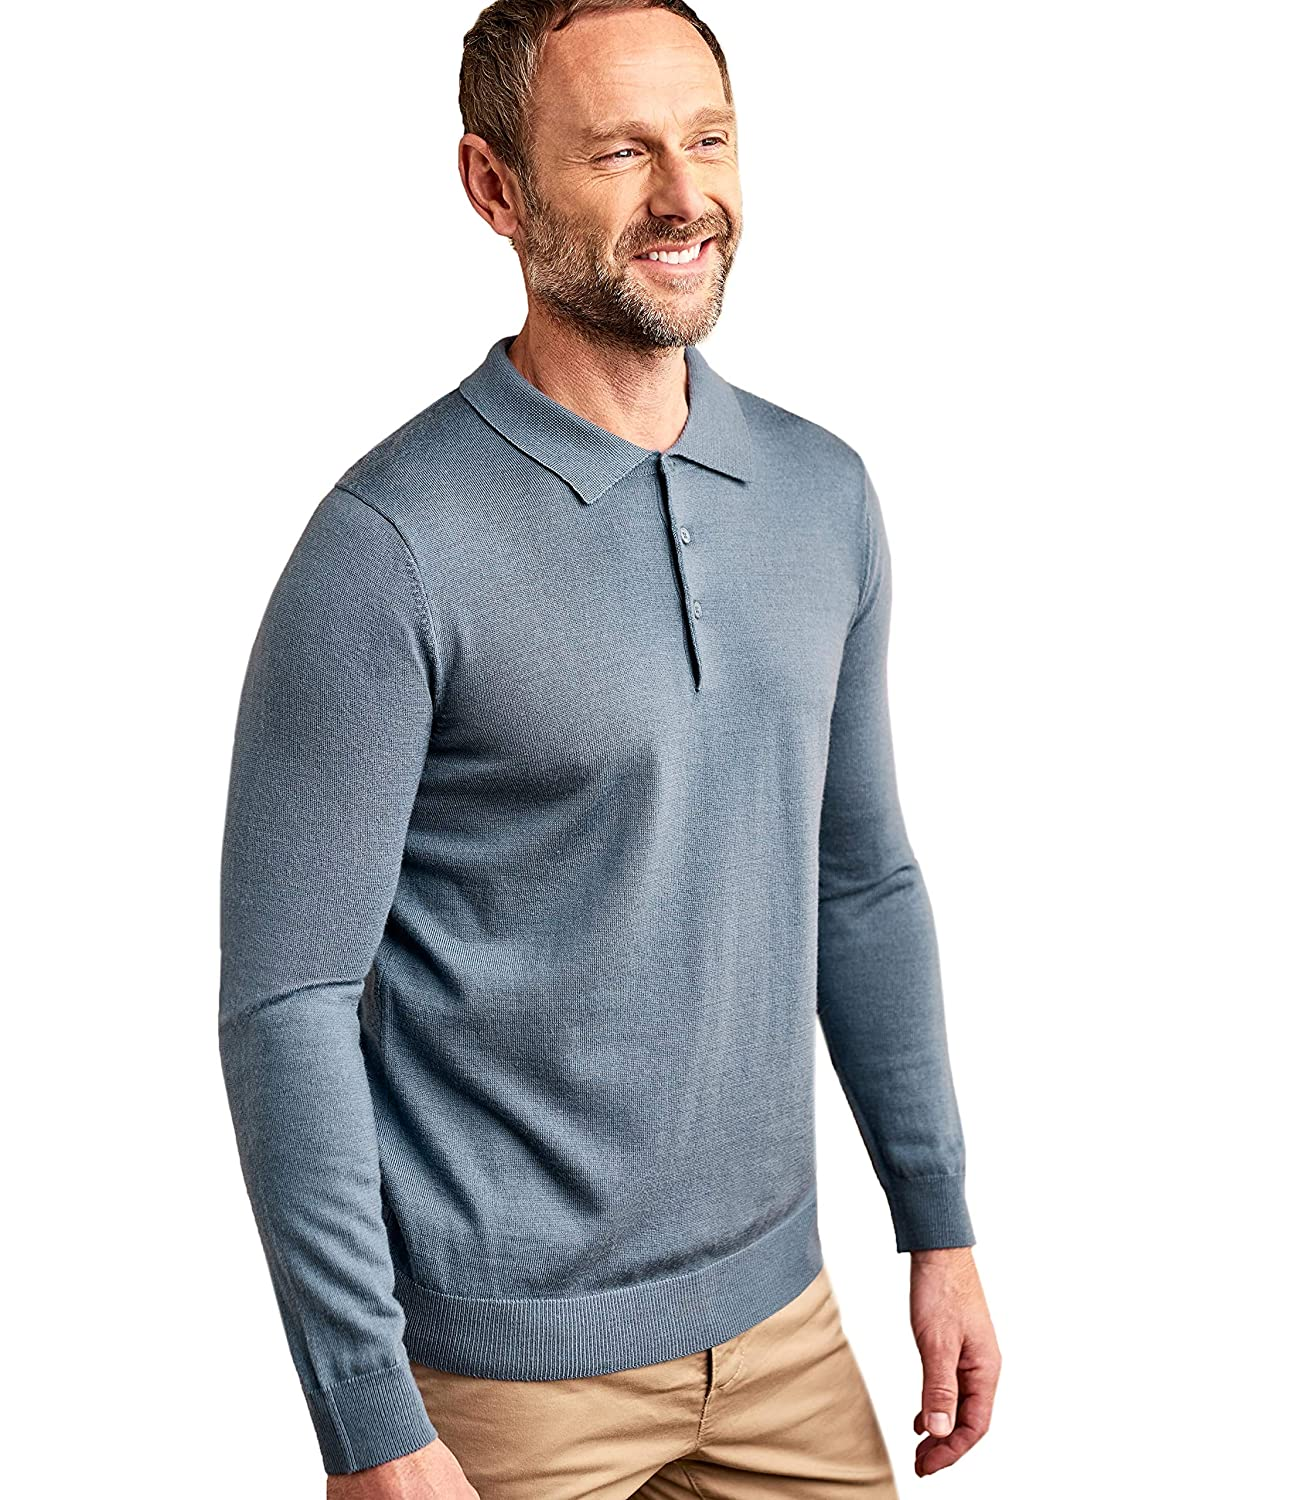 Woolovers Mens Merino Long Sleeves Button Placket Polo Shirt Storm Blue L